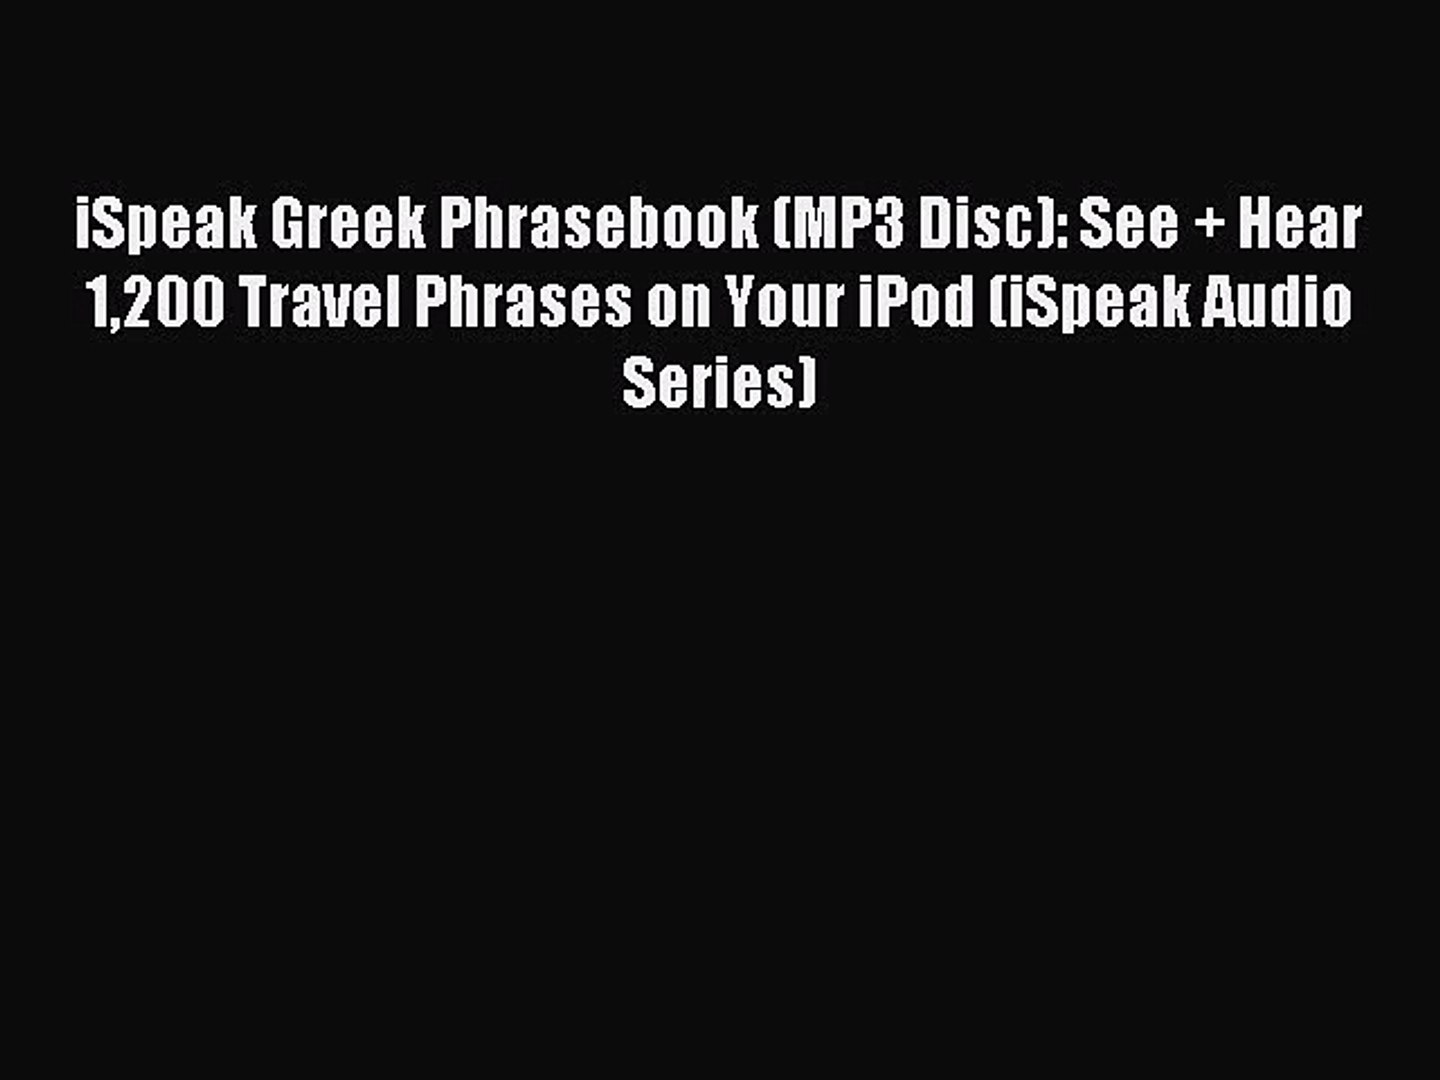 Read iSpeak Greek Phrasebook (MP3 Disc): See + Hear 1200 Travel Phrases on  Your iPod (iSpeak